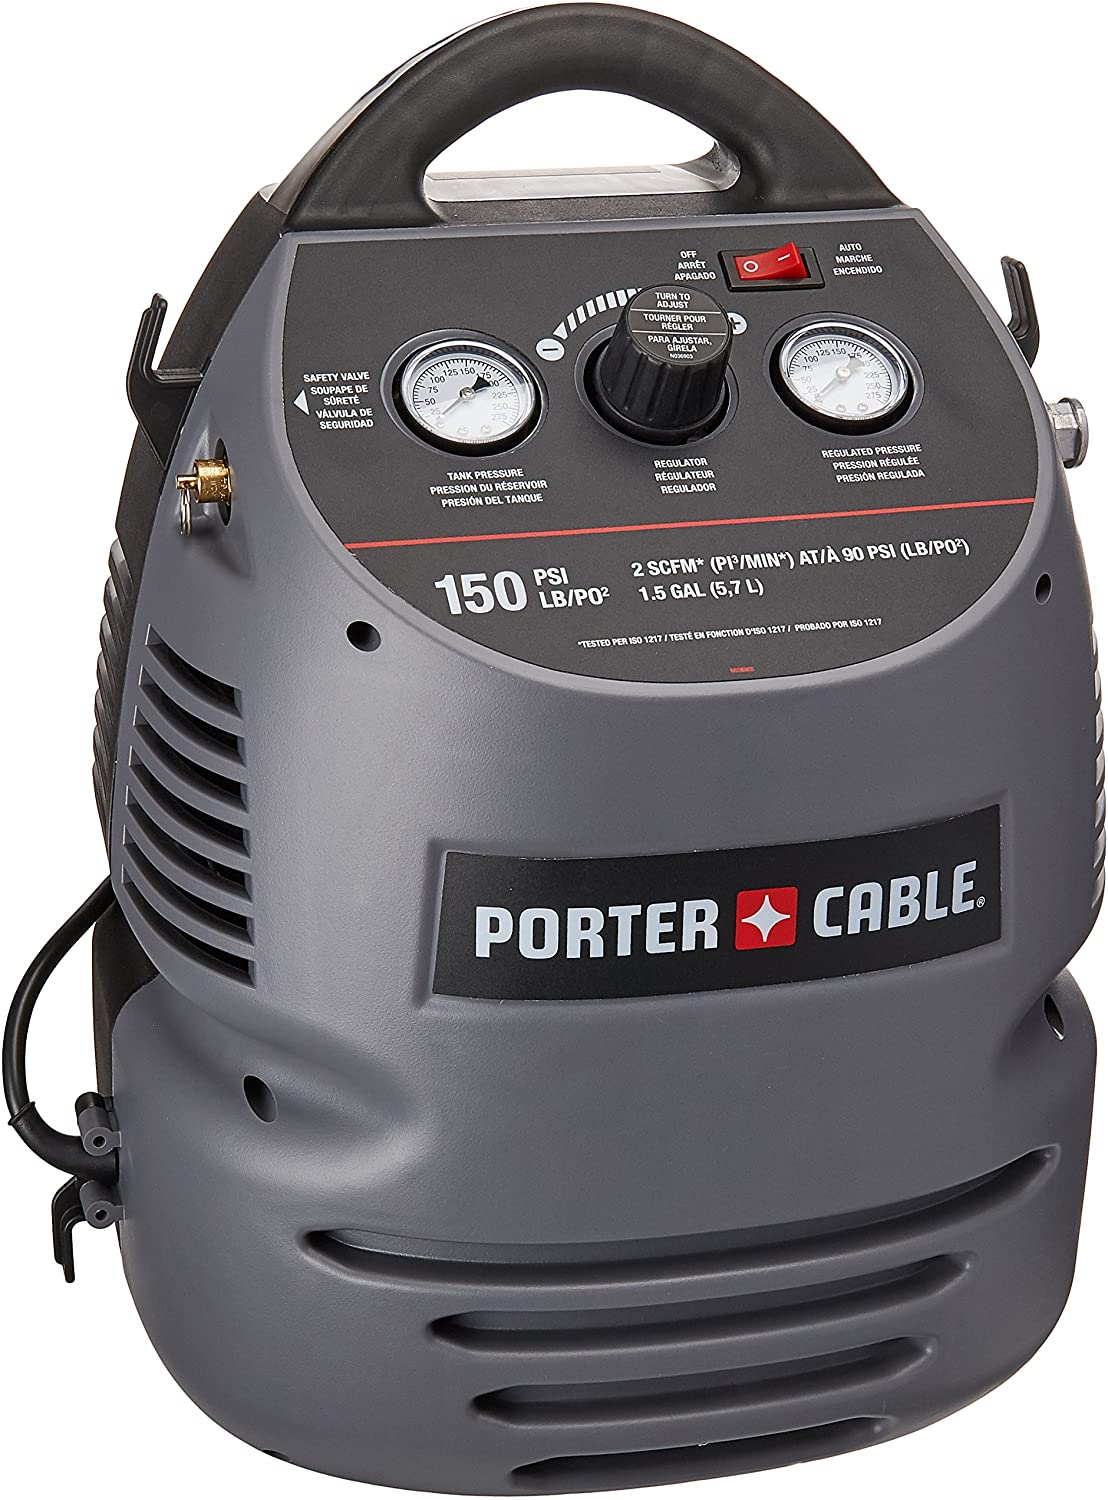 PORTER-CABLE CMB15 (1.5 Gallon) Oil-Free Fully Shrouded / Hand Carry Compressor Kit with 25' Hose